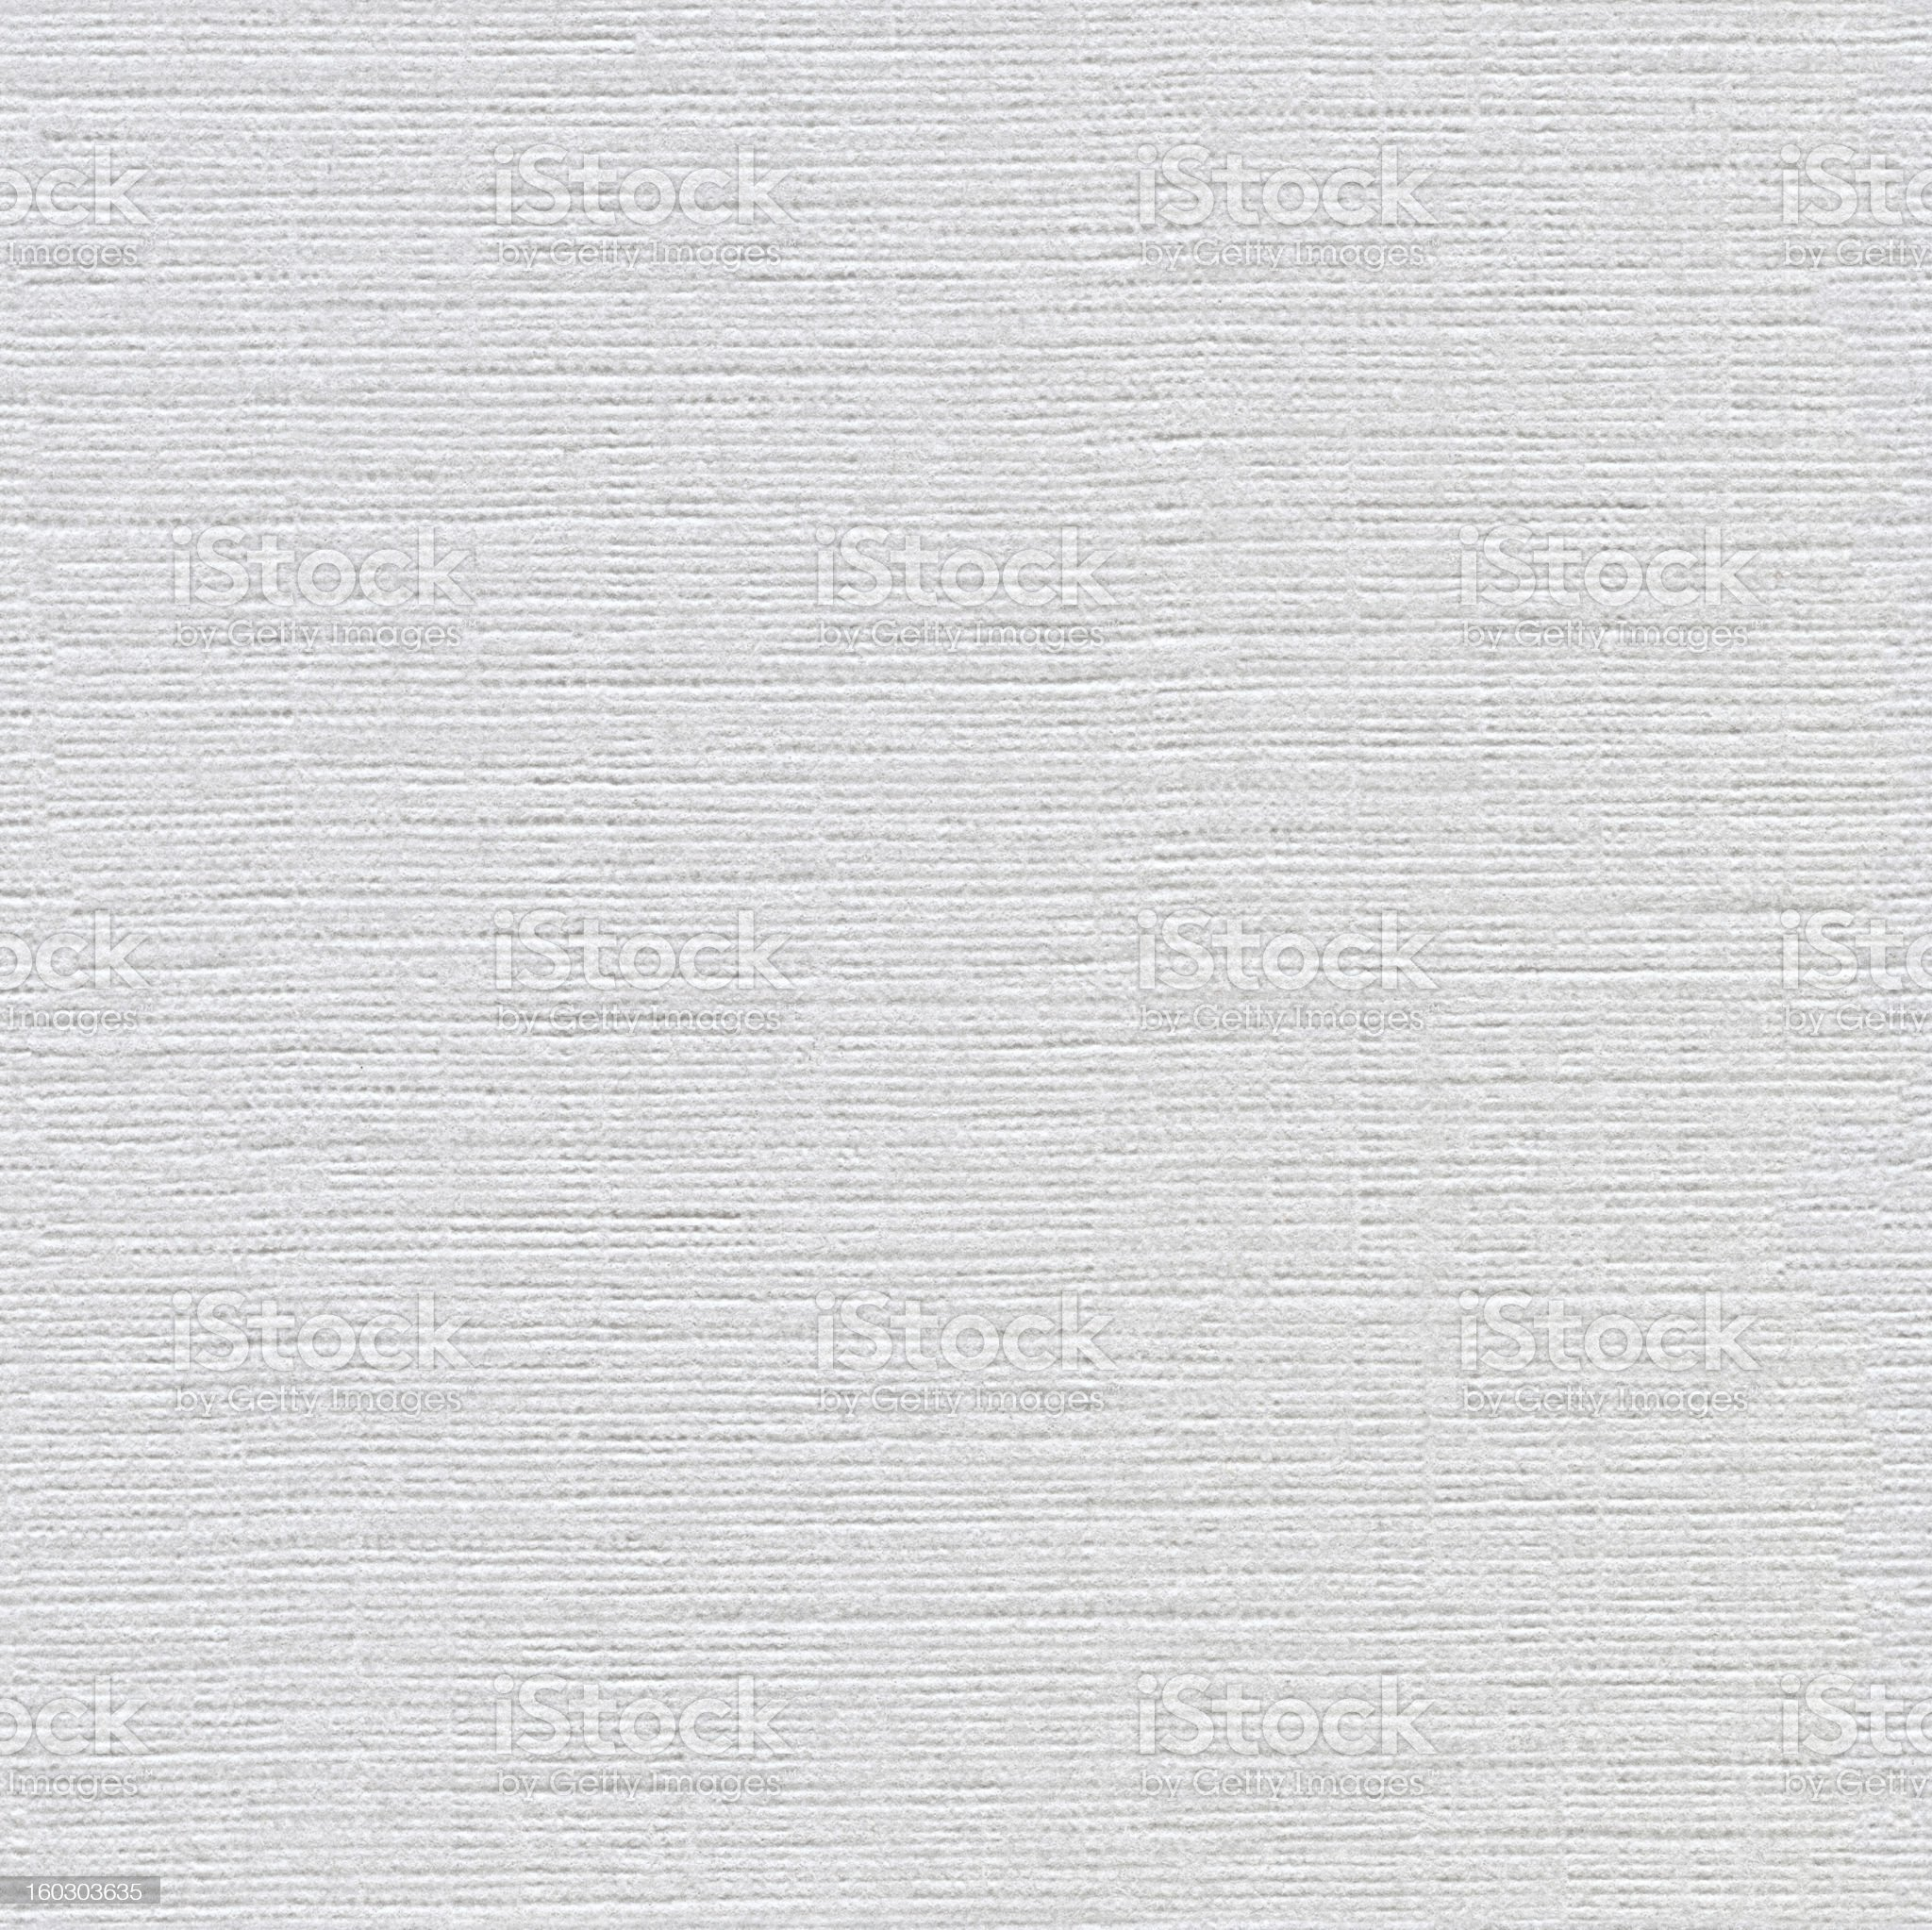 Seamless burlap-textured paper background royalty-free stock photo